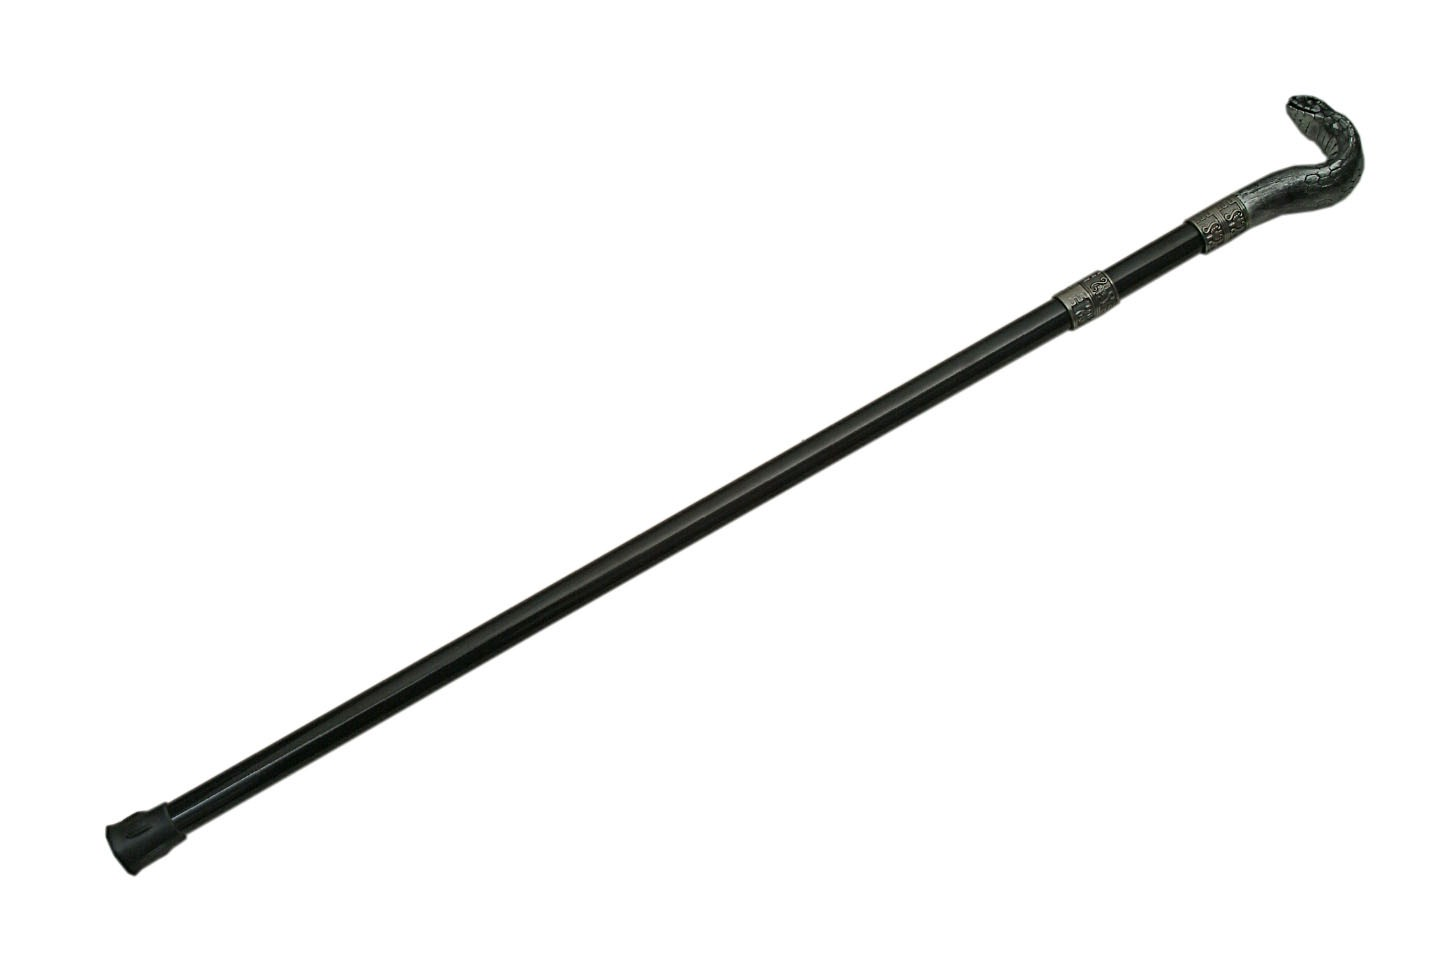 COBRA HEAD WALKING CANE